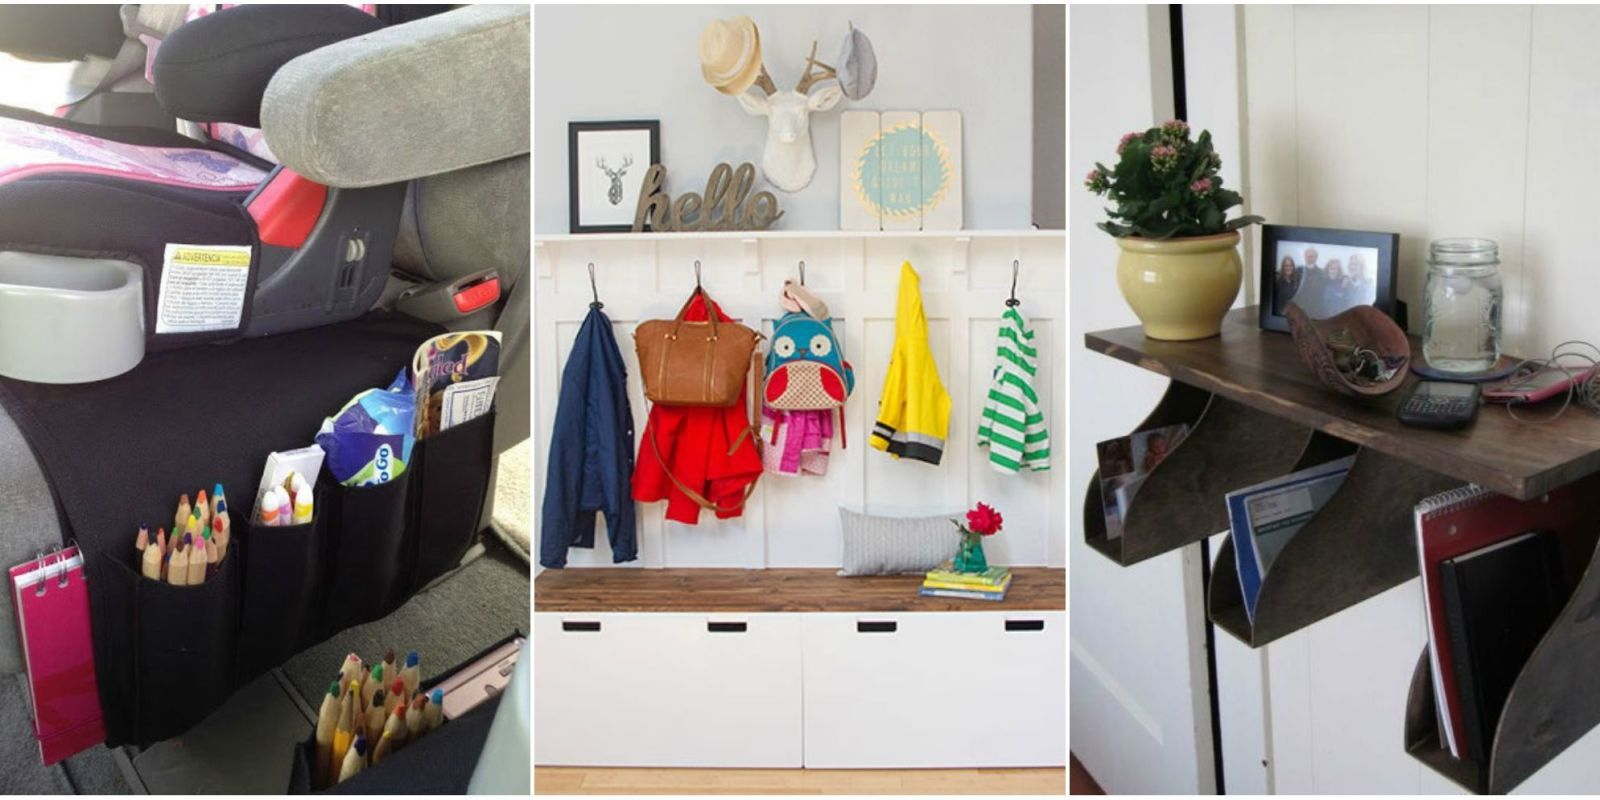 16 IKEA Hacks To Help You Organize Your Life